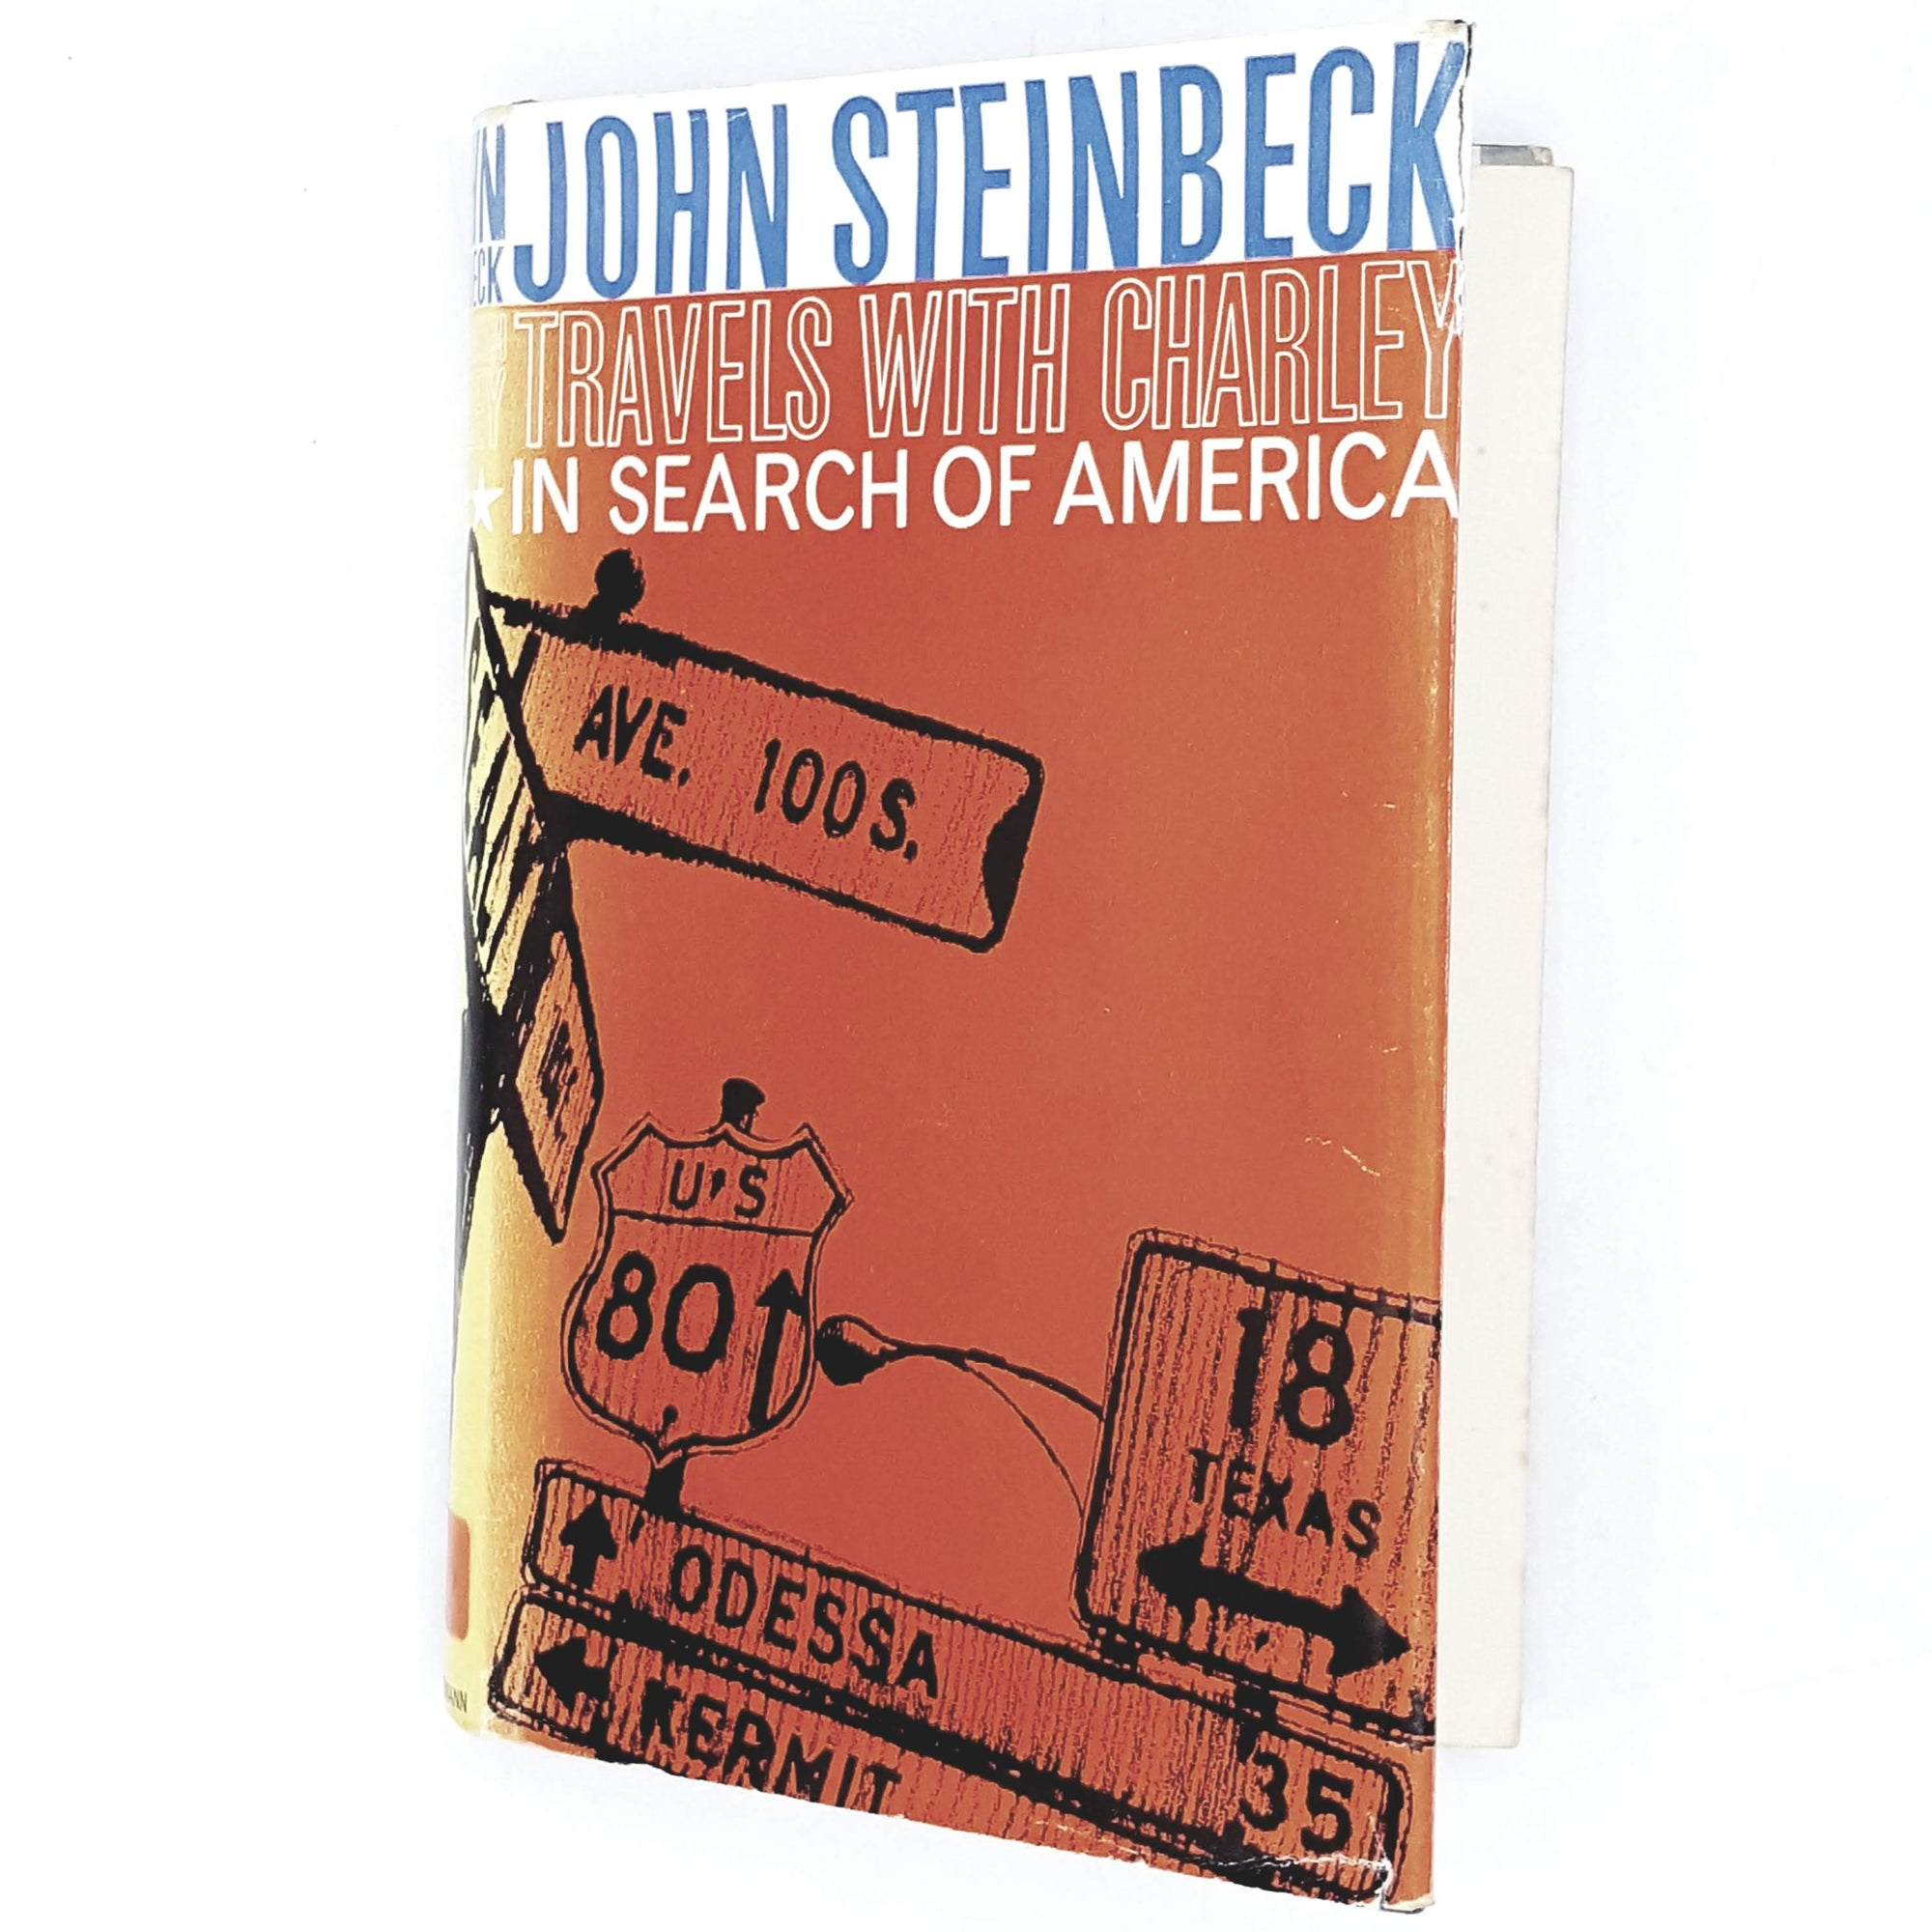 John Steinbeck's Travels with Charley In Search of America 1965